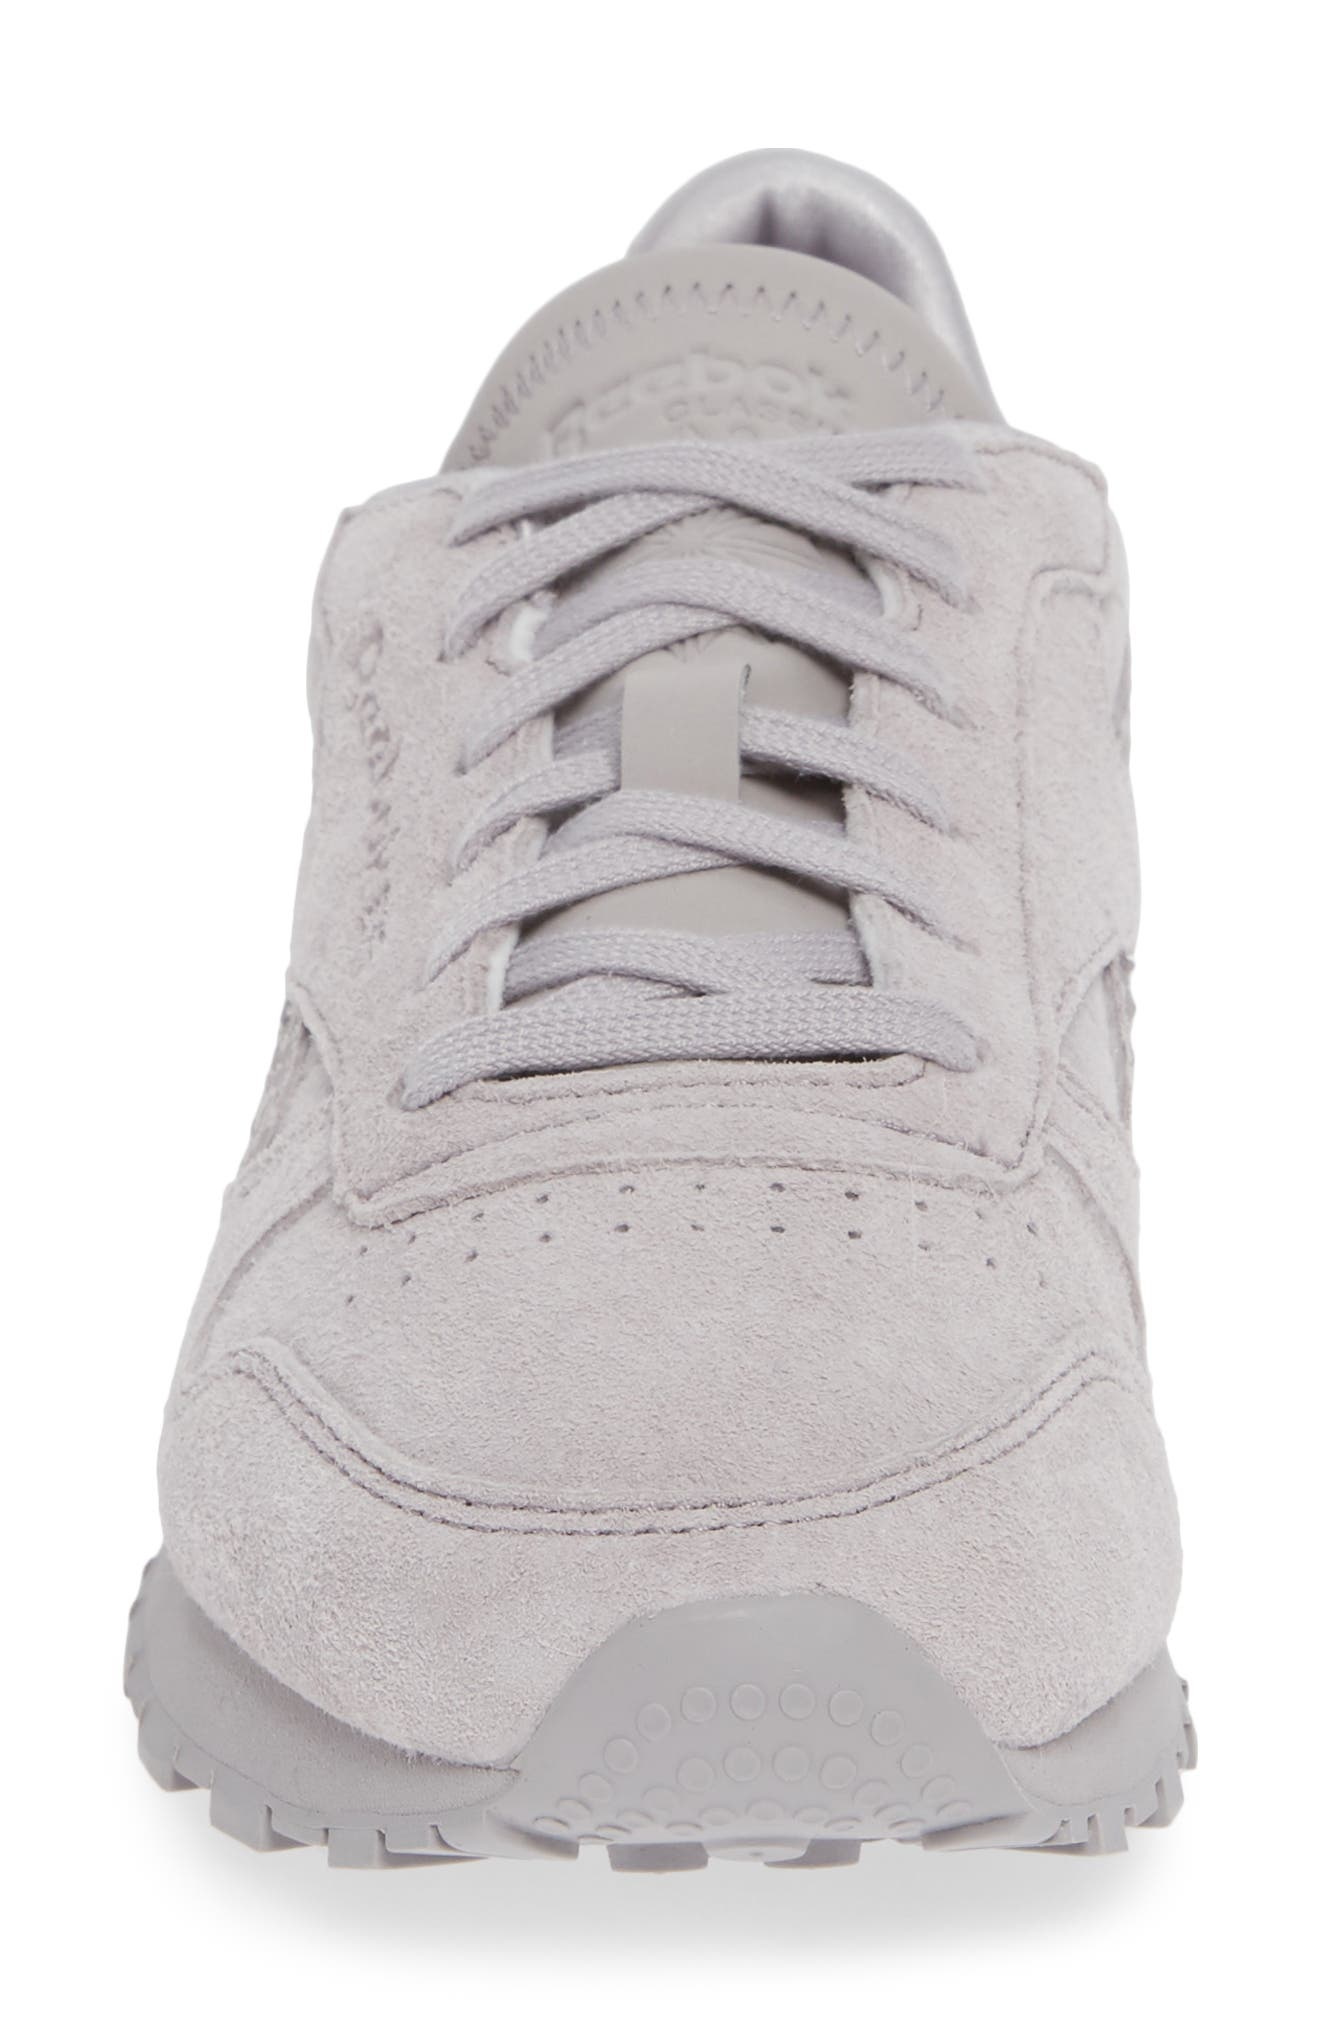 Classic Leather Sneaker,                             Alternate thumbnail 4, color,                             WHISPER GREY